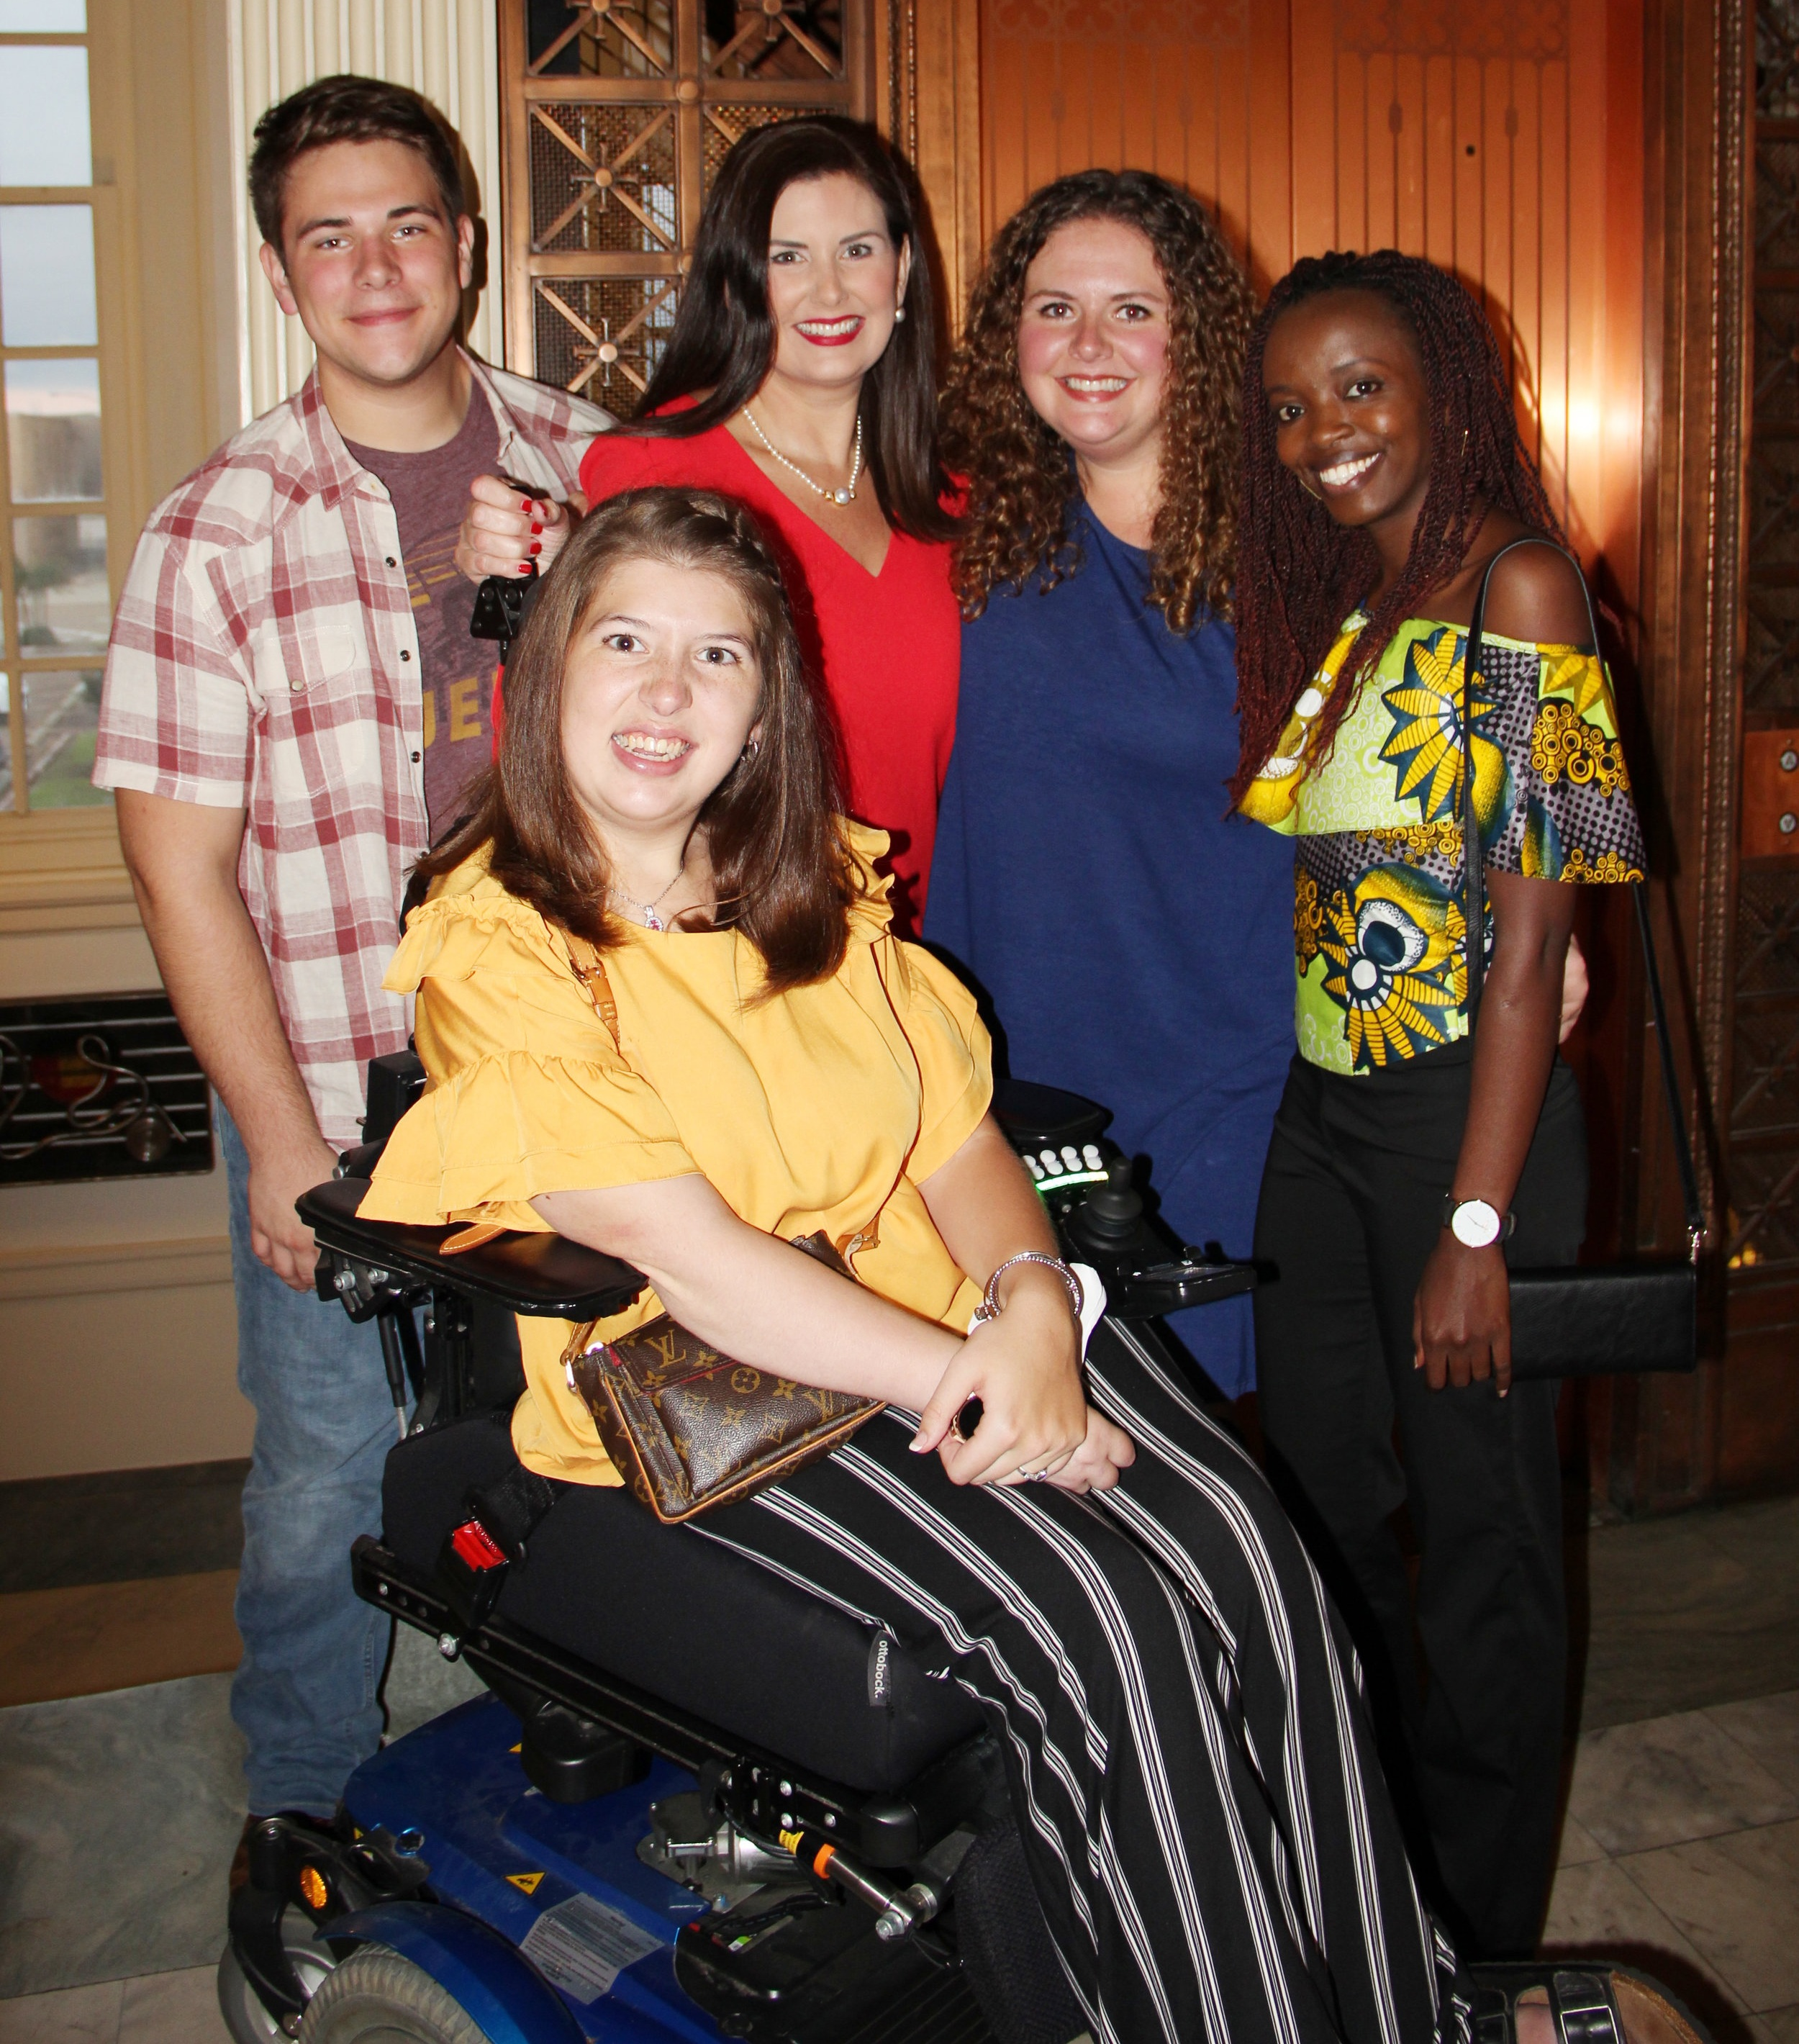 Briley Court, Robin Rogers, Emily Orr, Ellen Orr, and Gabie during  Four States Living Magazine's  25th Anniversary Celebration held September 27 in the Regional Arts Center in Downtown Texarkana.